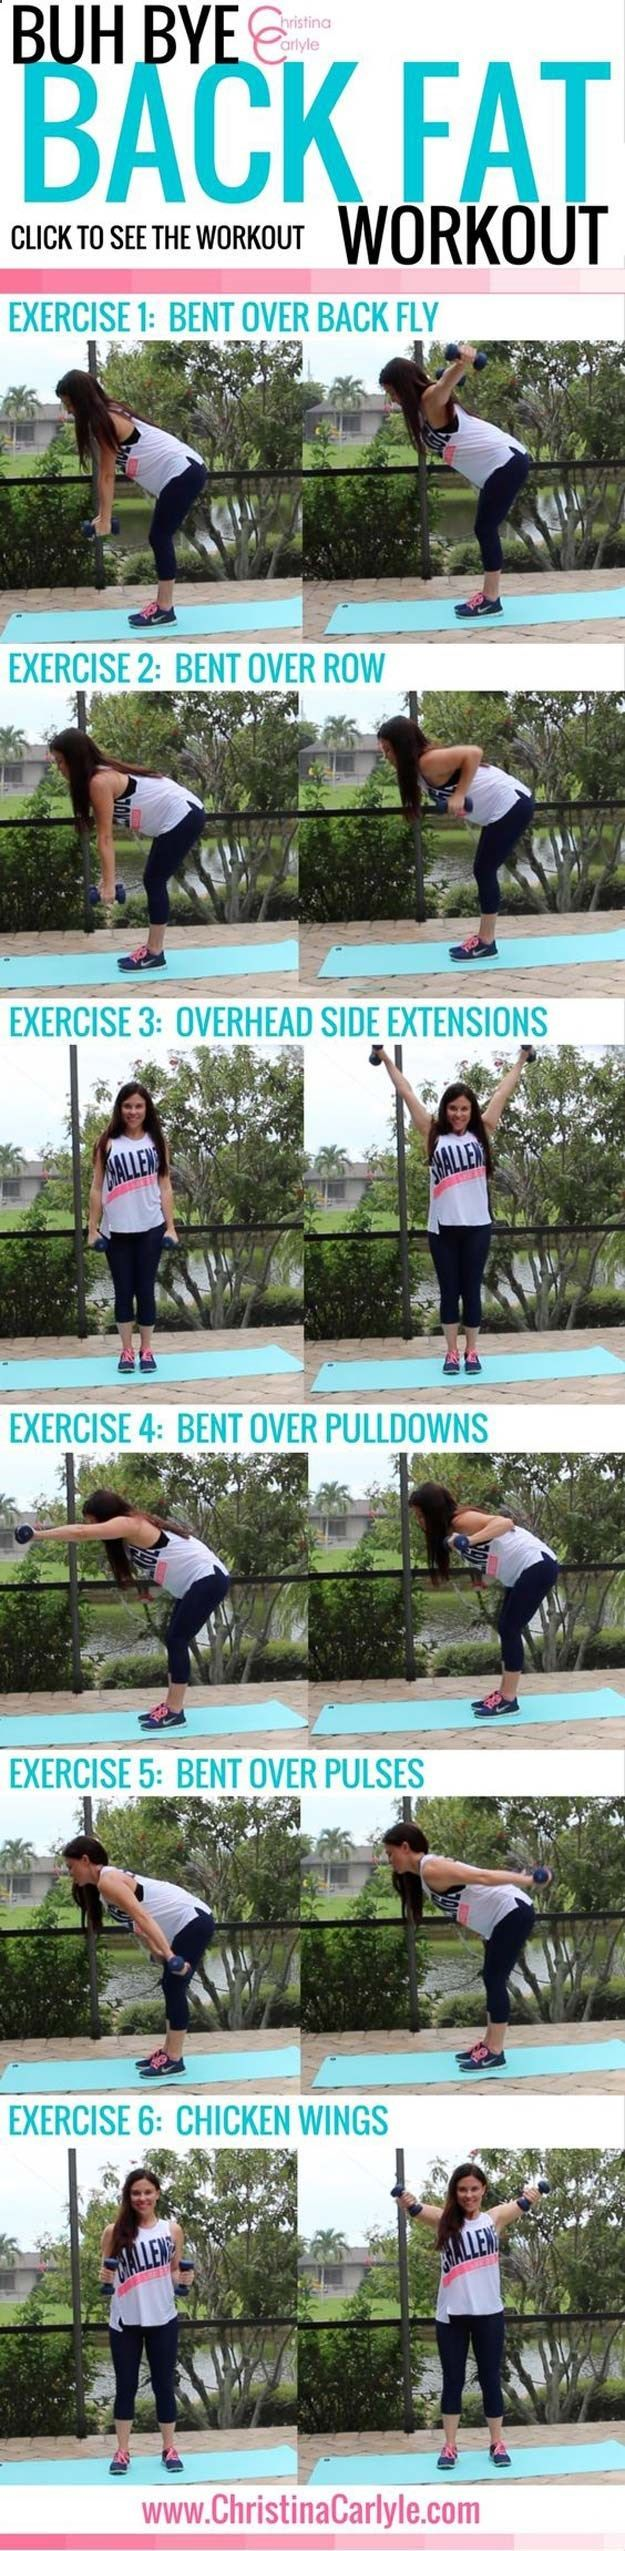 Best Exercises for Abs - Workouts for women - Exercises for Back Fat - Best Ab Exercises And Ab Workouts For A Flat Stomach, Increased Health Fitness, And Weightless. Ab Exercises For Women, For Men, And For Kids. Great With A Diet To Help With Losing Wei stomach fat burning